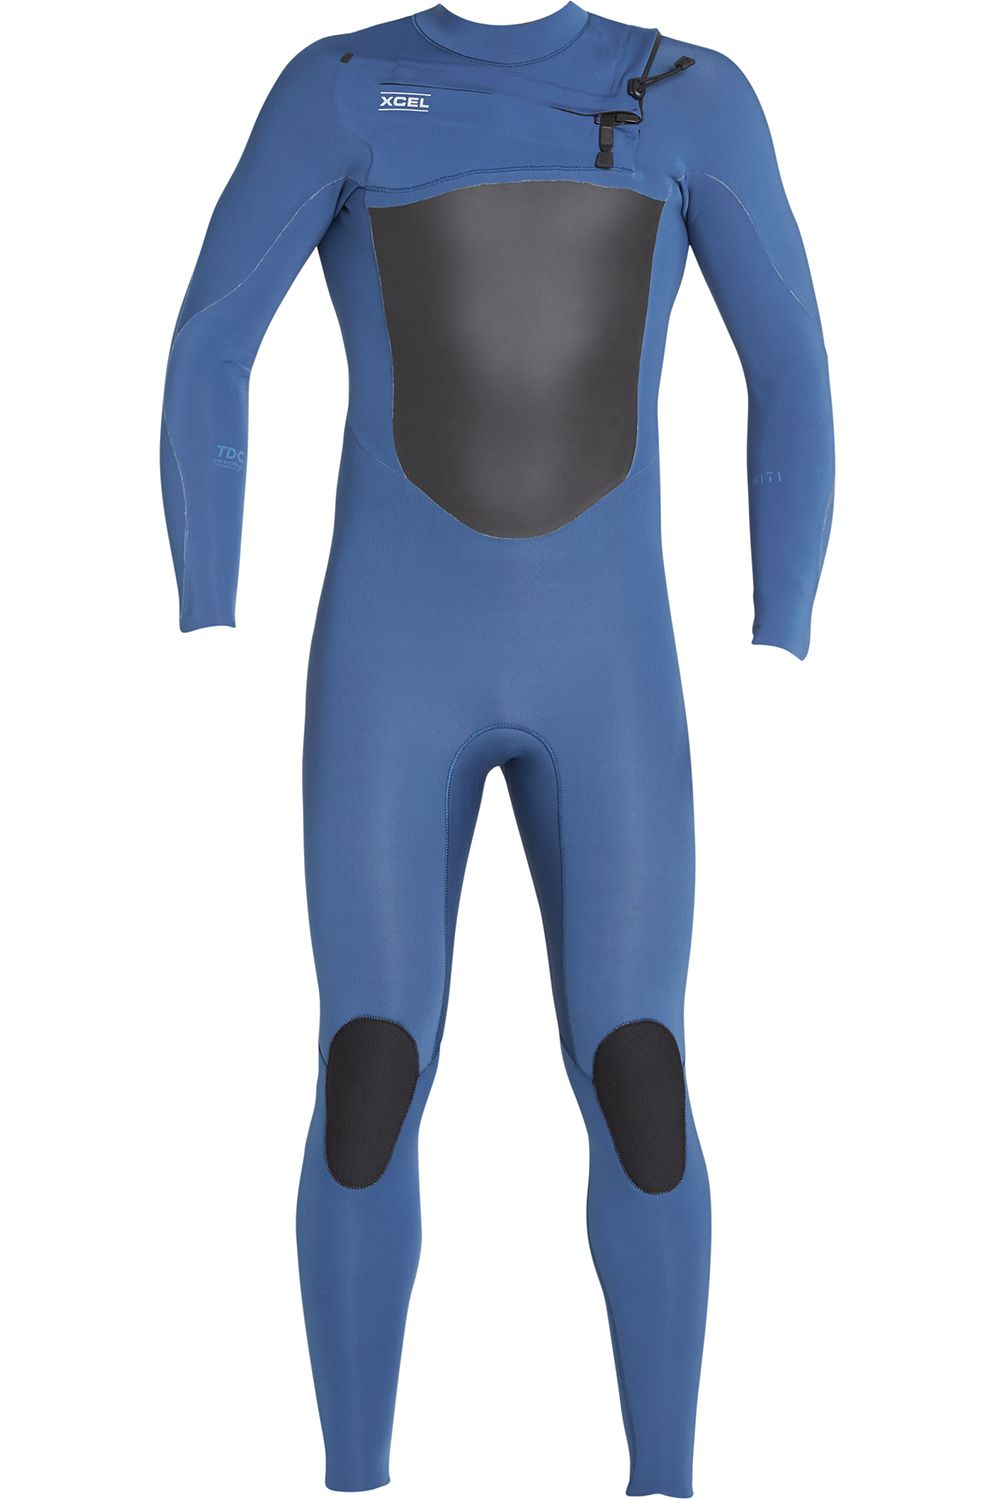 Fato Neoprene Xcel 3/2MM INFINITI X2 TDC THERMO LITE FULLSUIT All Cascade Blue 3x2mm